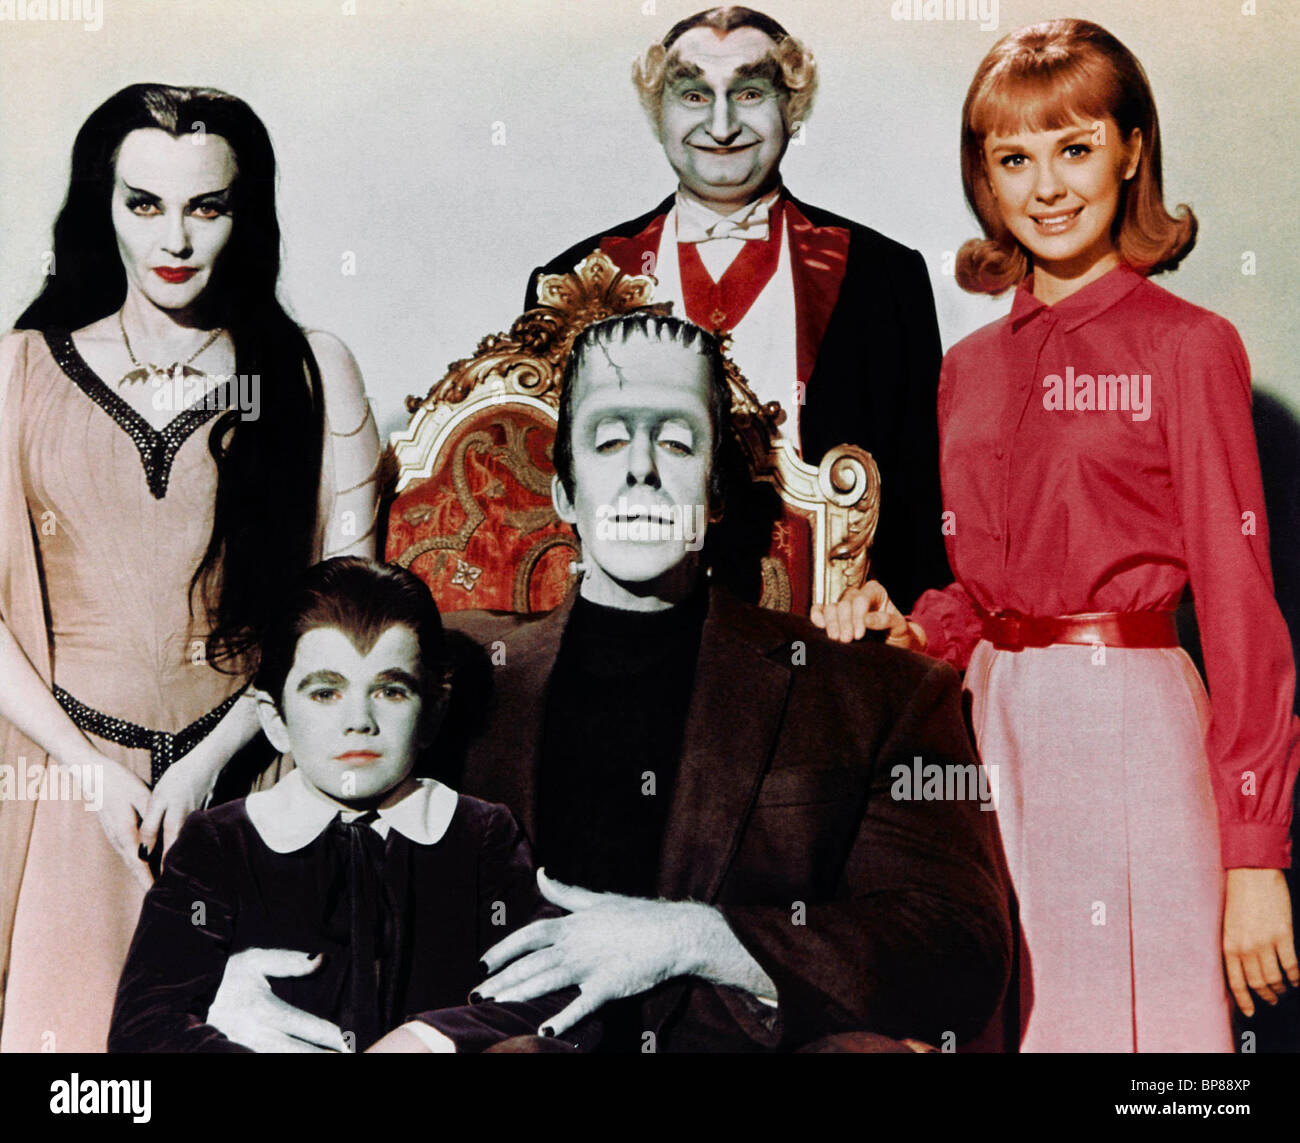 YVONNE DE CARLO AL LEWIS BEVERLEY OWEN FRED GWYNNE & BUTCH PATRICK THE MUNSTERS (1964). Imagen De Stock